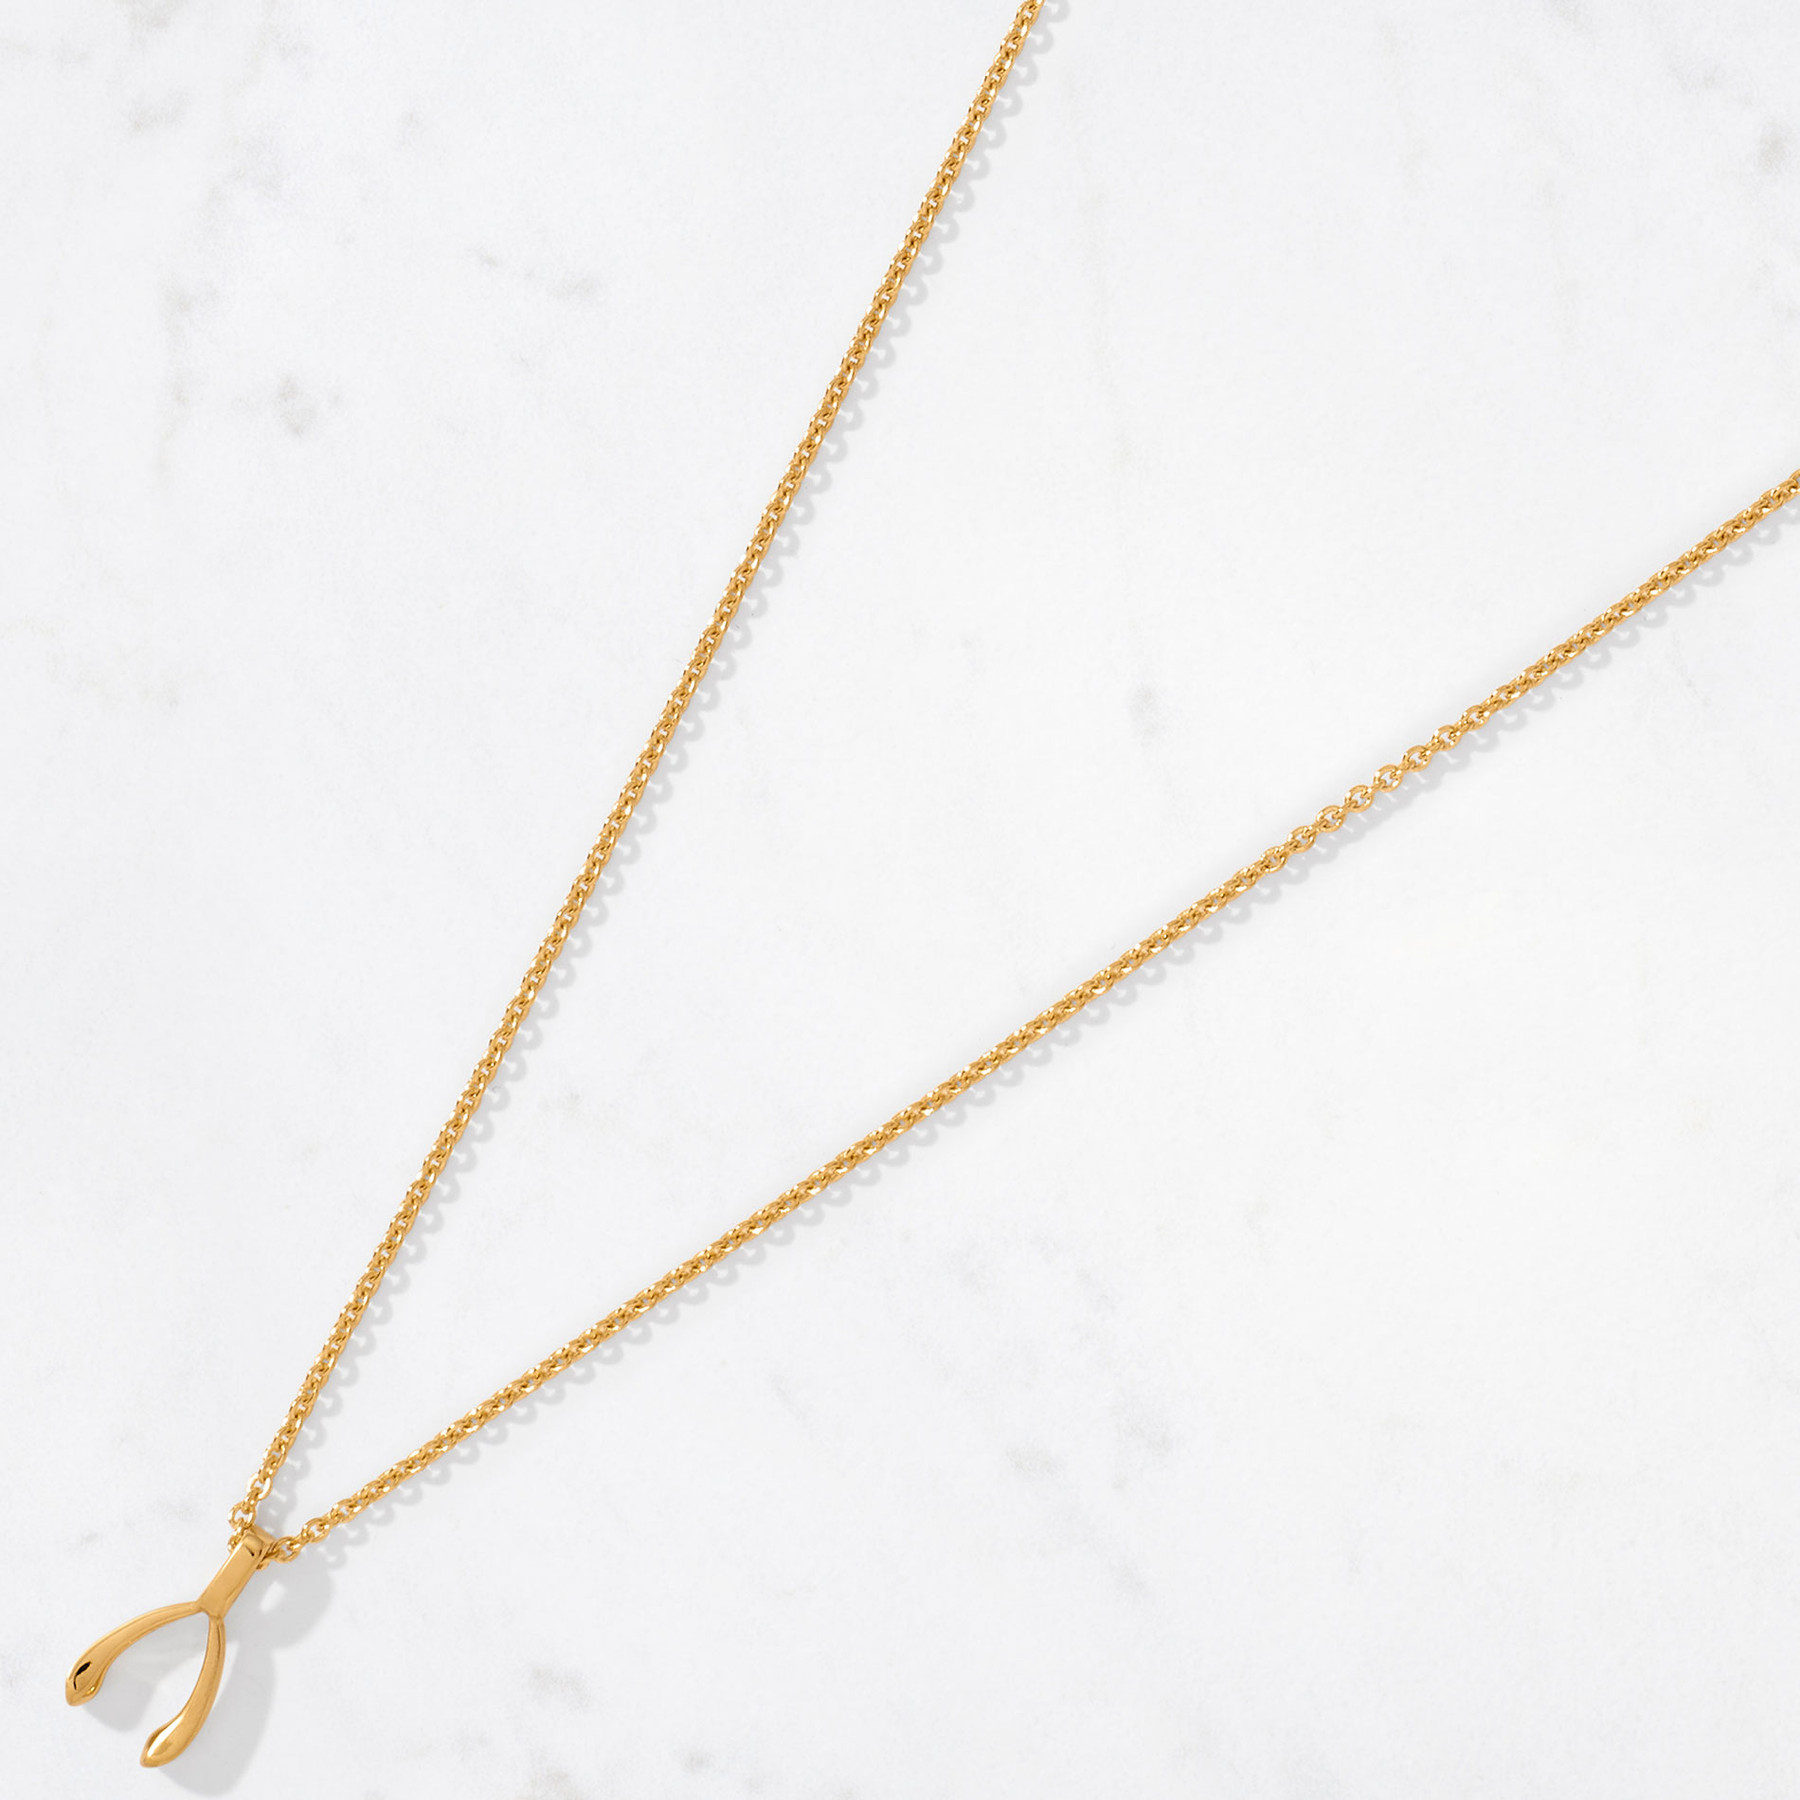 A little bit of luck goes a long way. Our Small Wishbone Pendant handcrafted in 22 karat polished gold with a gold weight of approximately 6 grams is a delicate reminder that good things sometimes come in small packages.